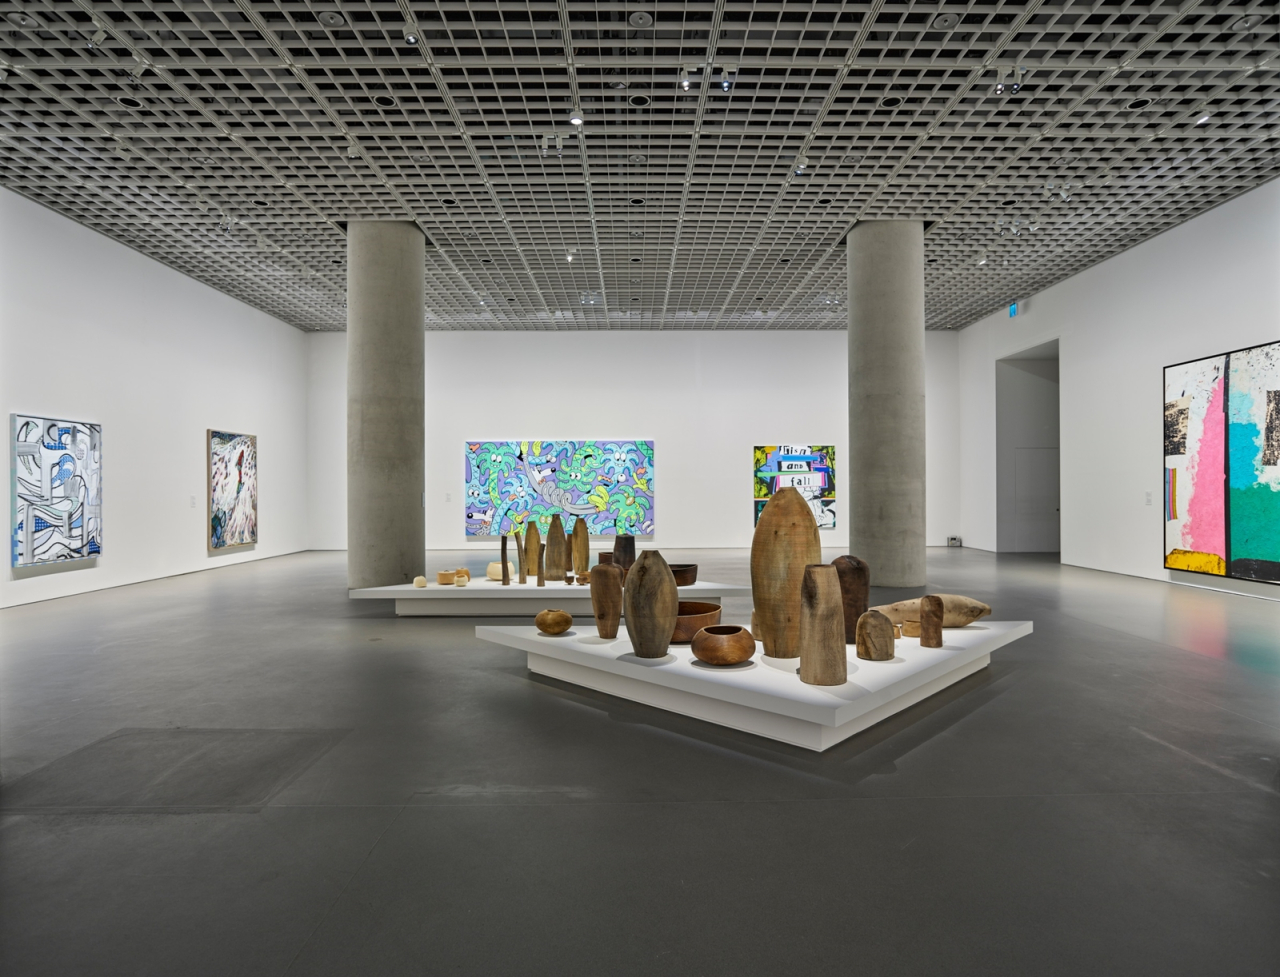 """Installation view of the exhibition """"APMA, Chapter Three"""" at Amorepacific Museum of Art (APMA)"""